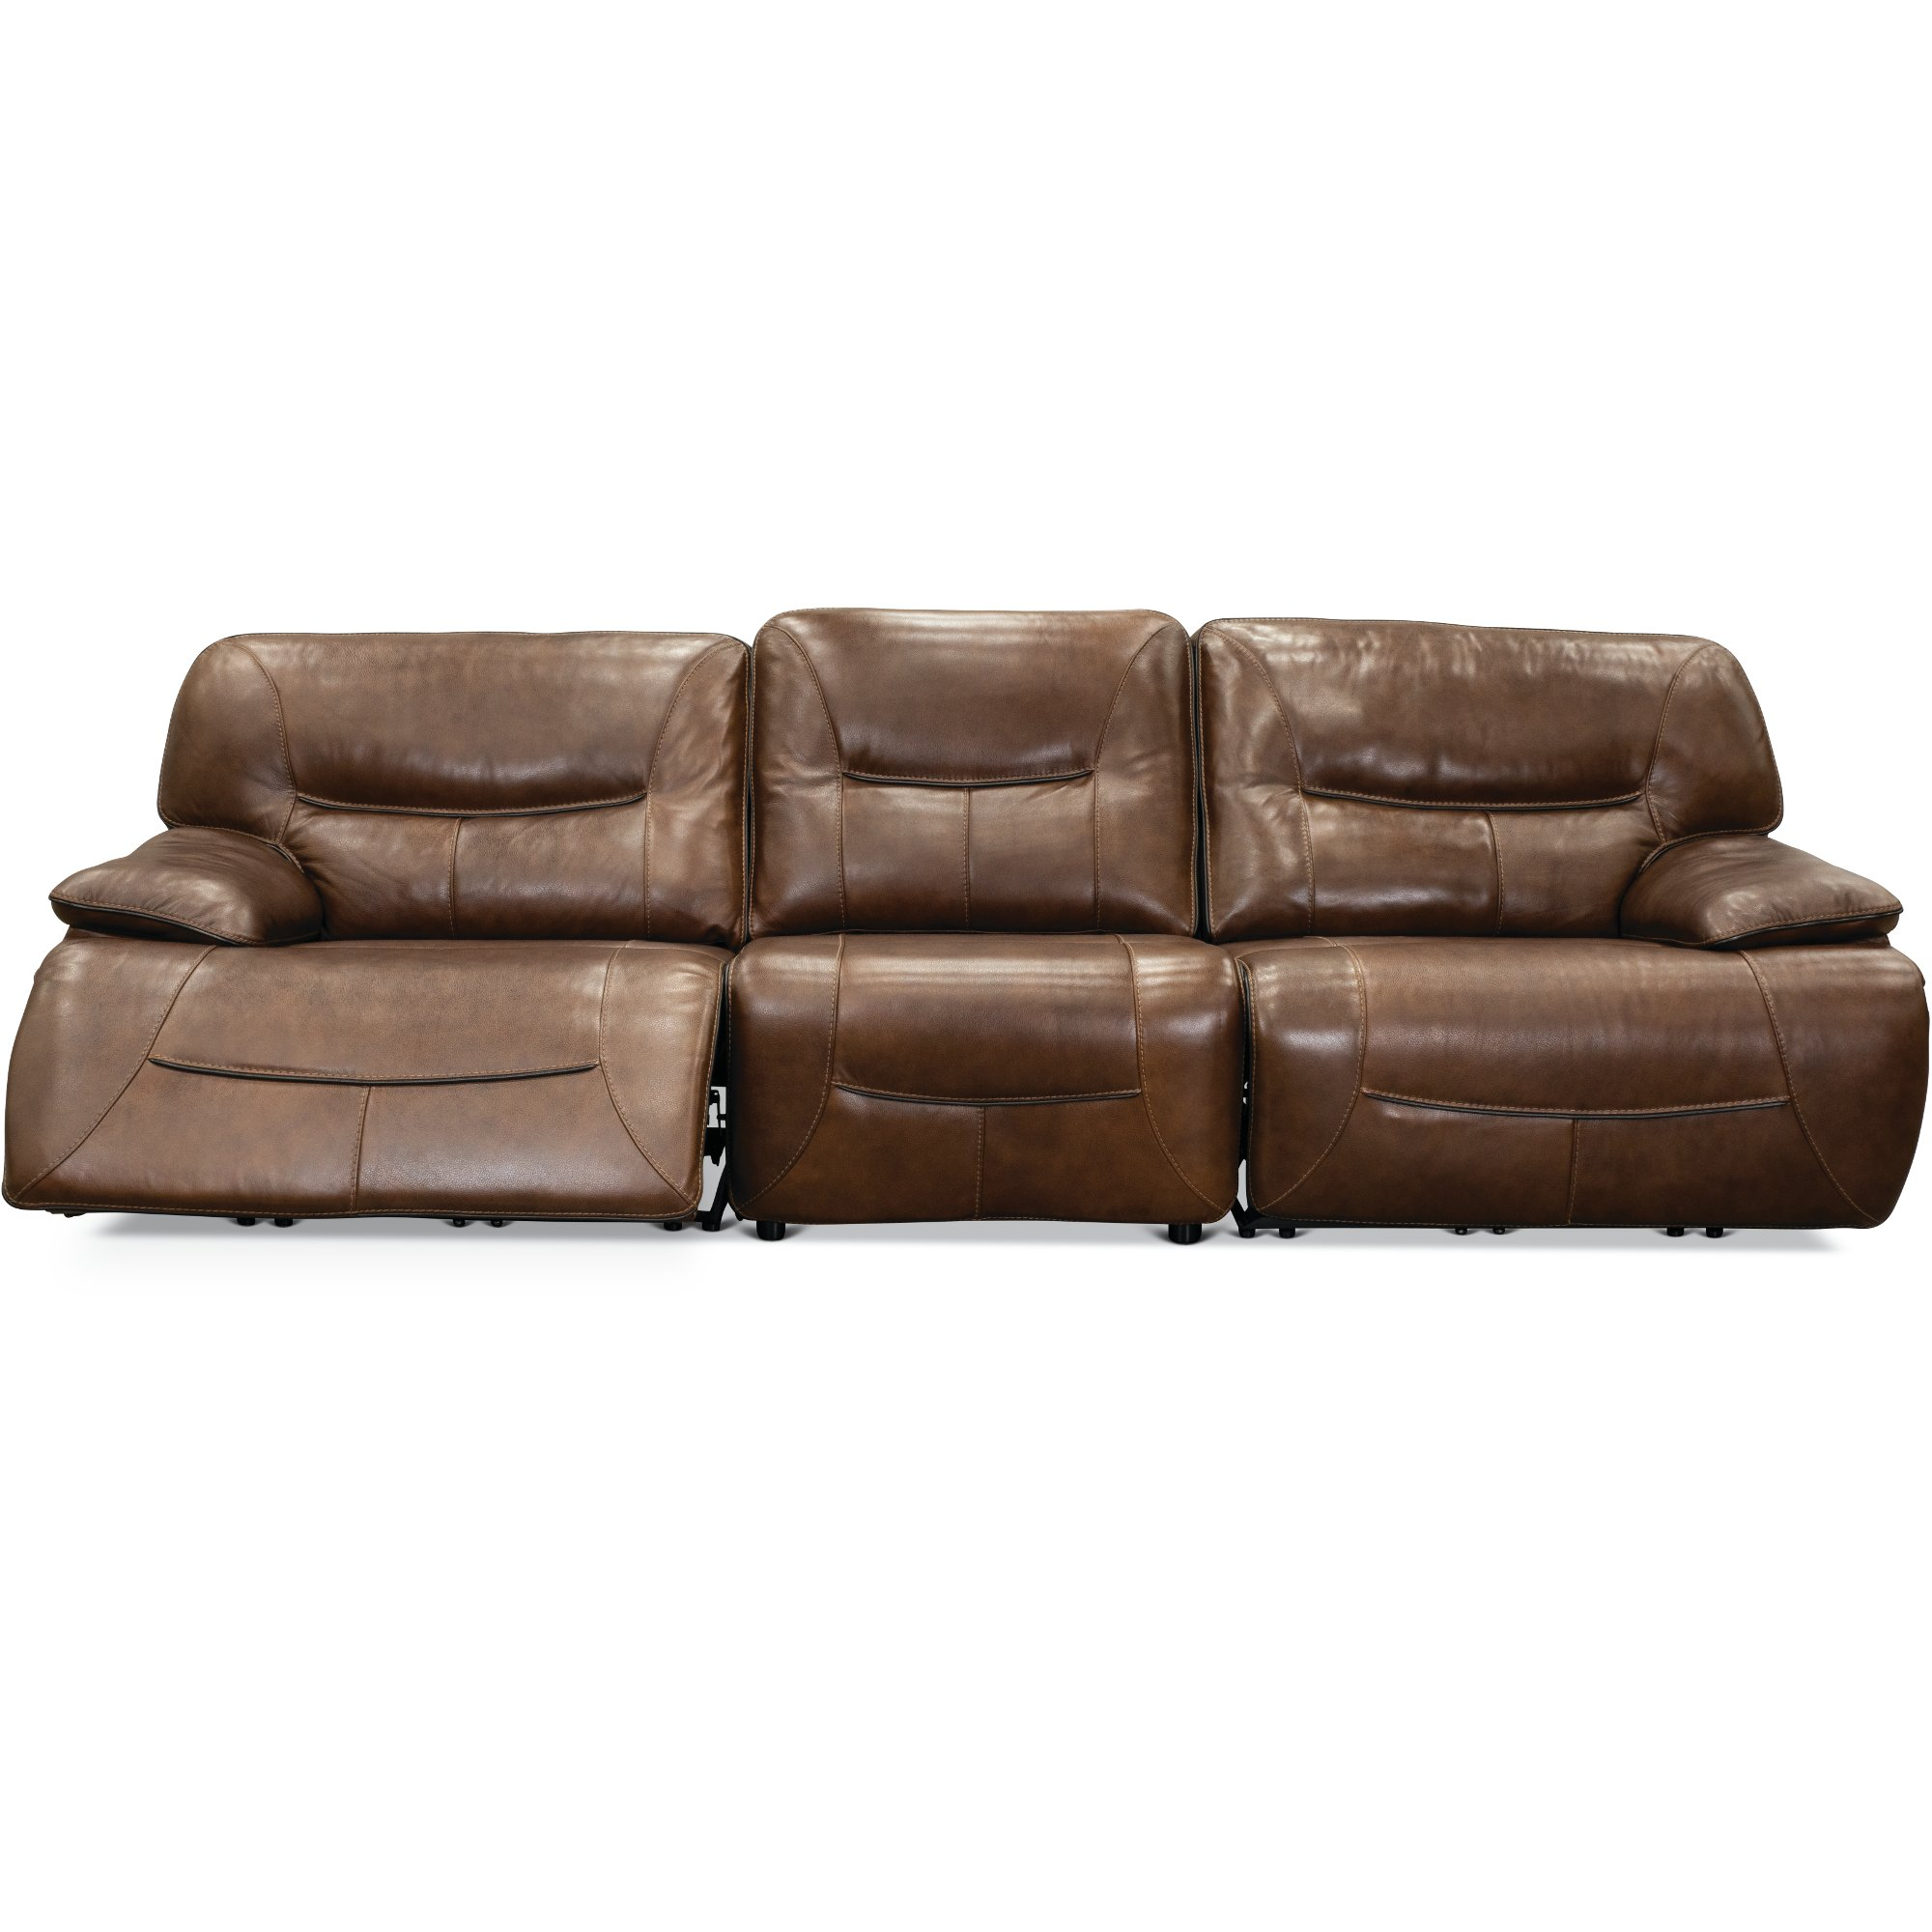 Brown Leather-Match 3 Piece Power Reclining Sofa - Max | RC Willey ...